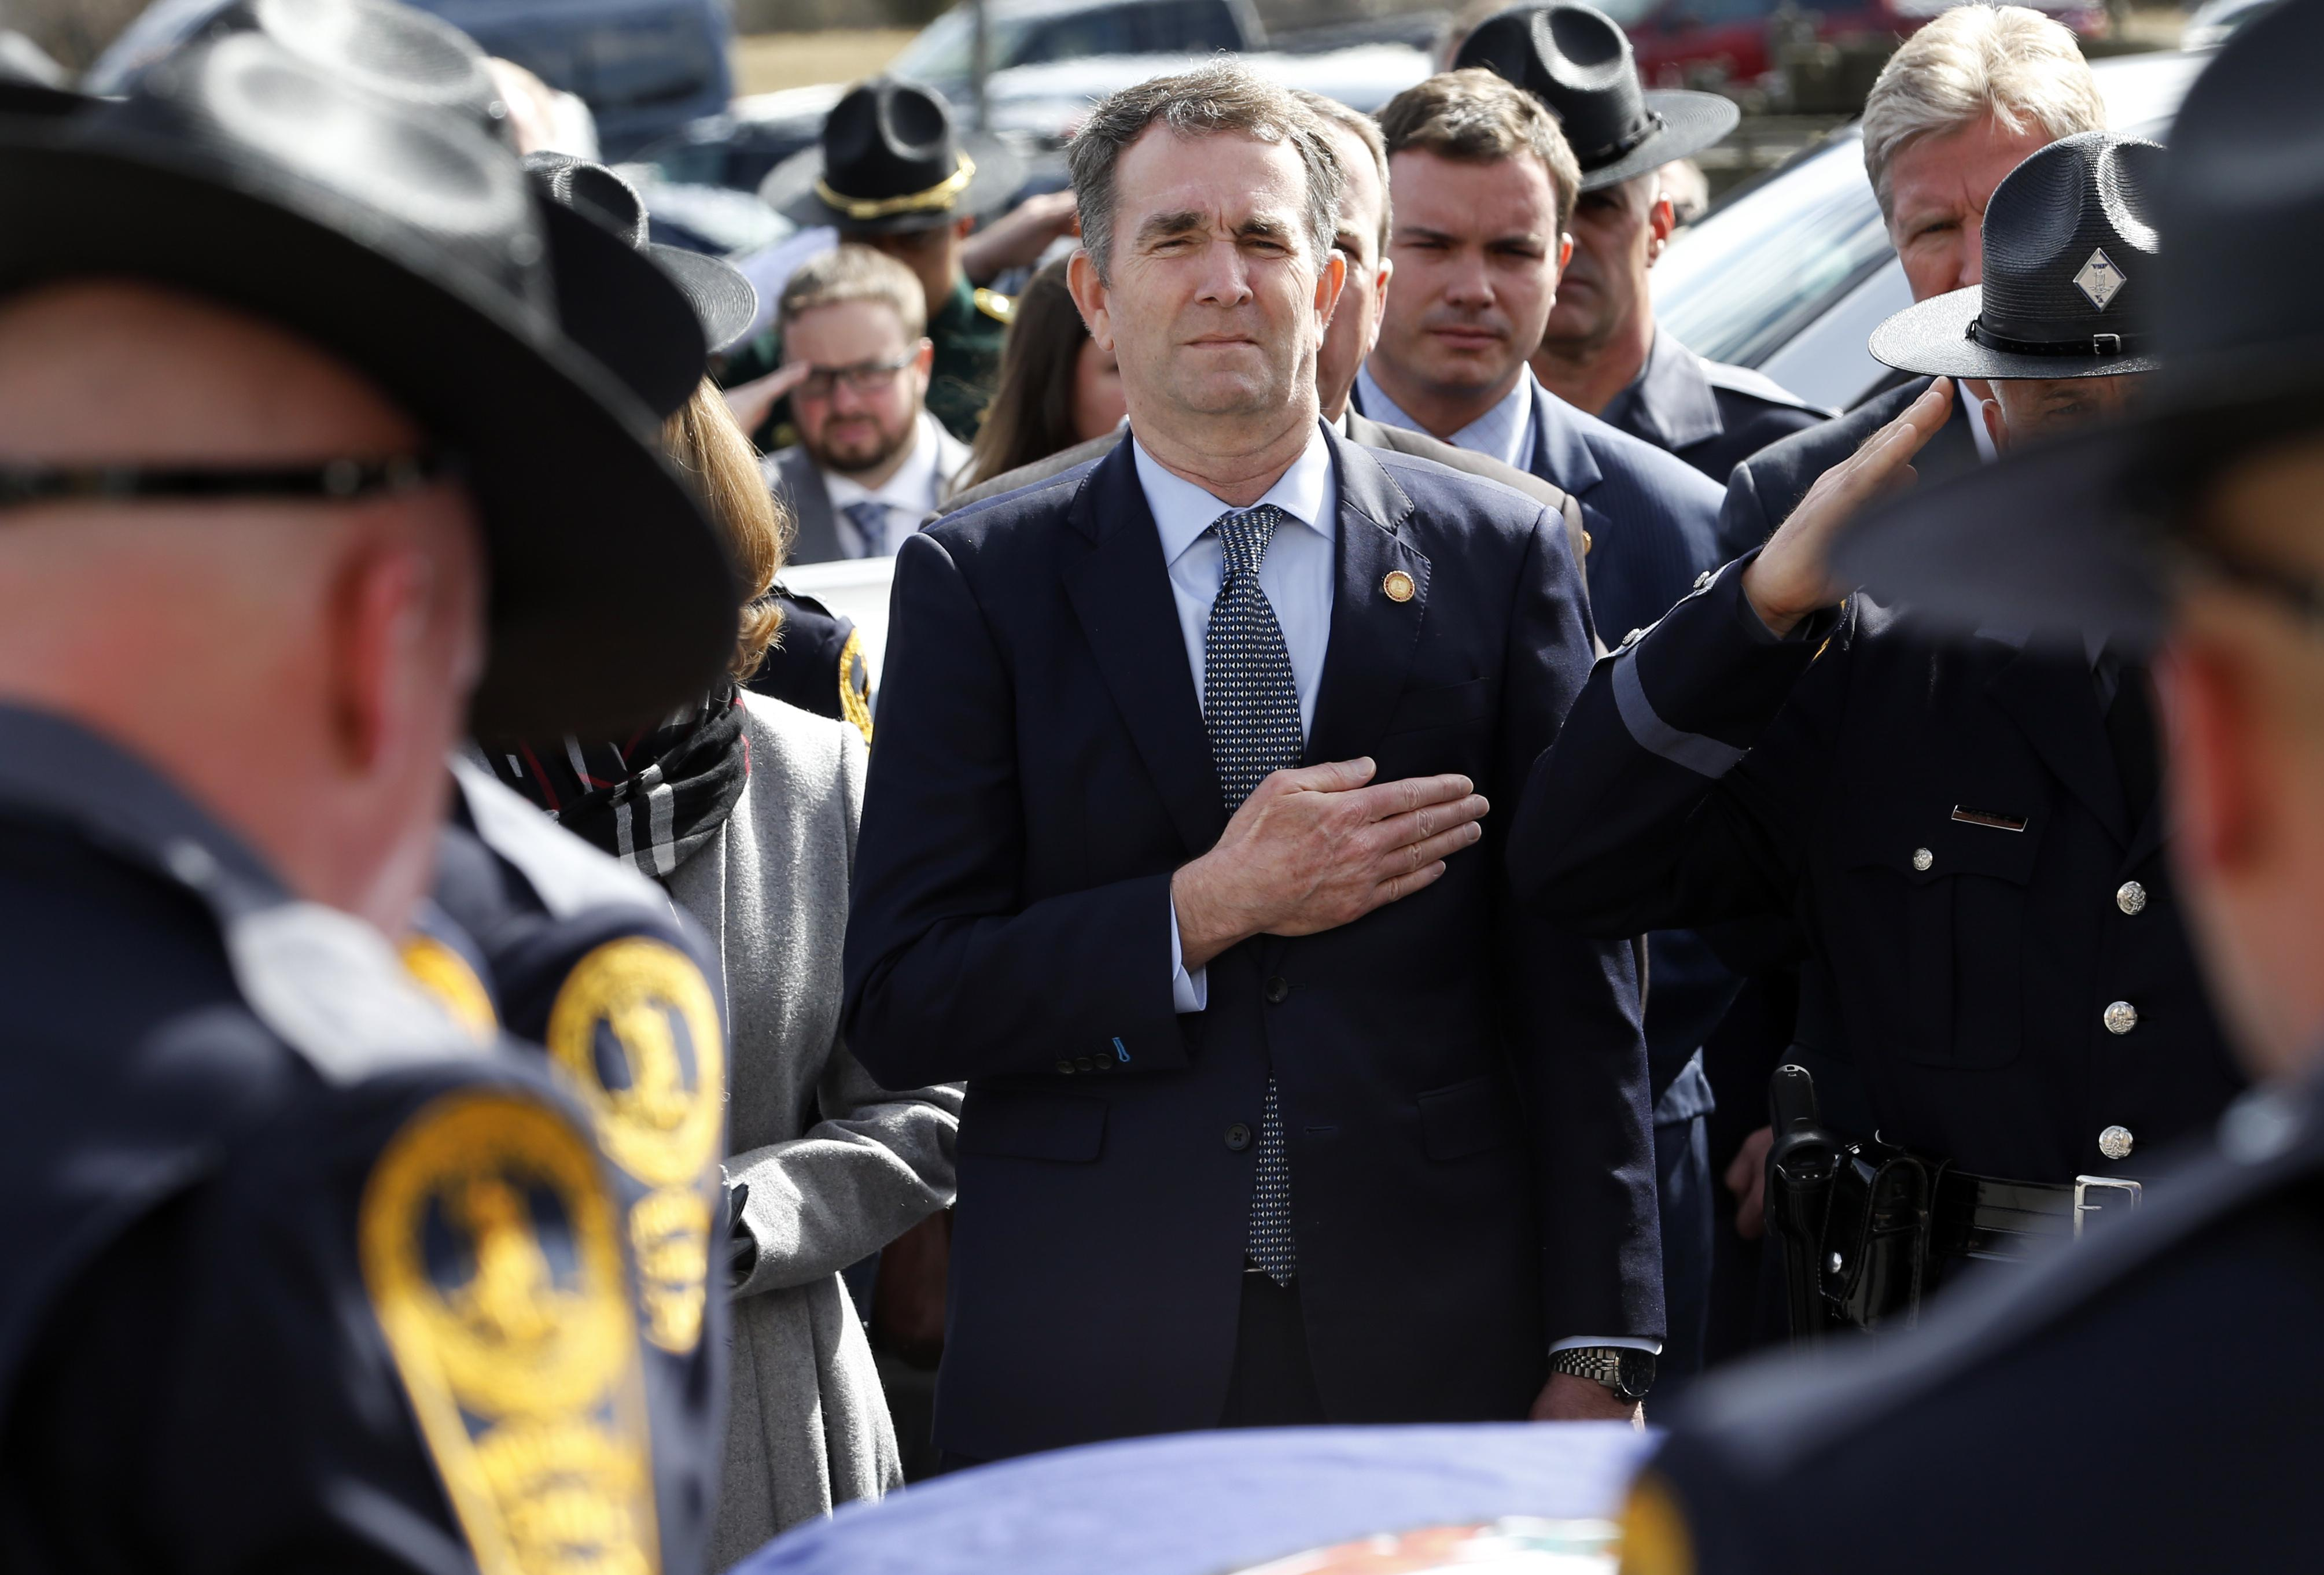 Virginia Gov. Ralph Northam watches as the casket of fallen Virginia State Trooper Lucas B. Dowell is carried to a waiting tactical vehicle during the funeral at the Chilhowie Christian Church on February 9, 2019 in Chilhowie, Virginia.